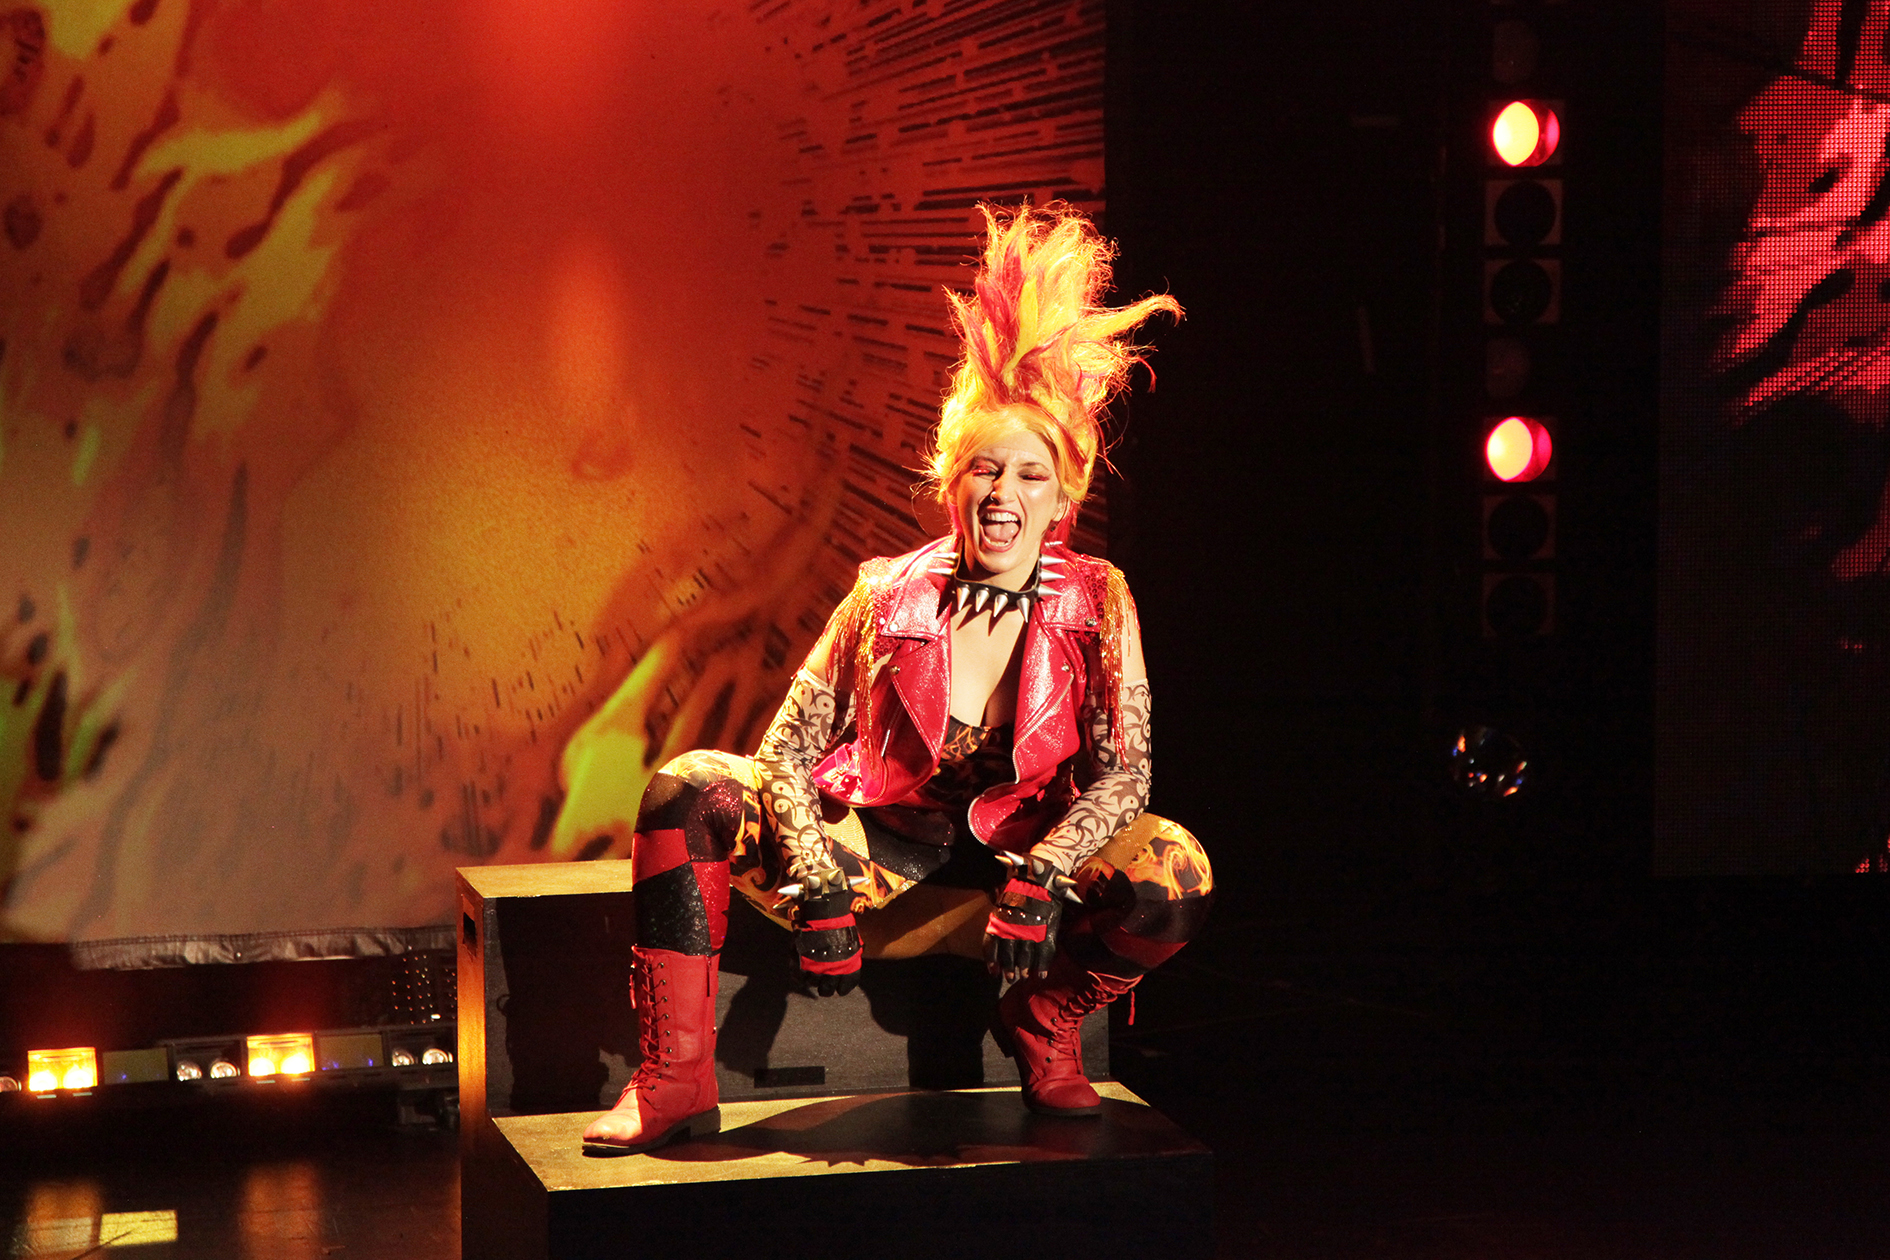 performer in a bright wig and boots